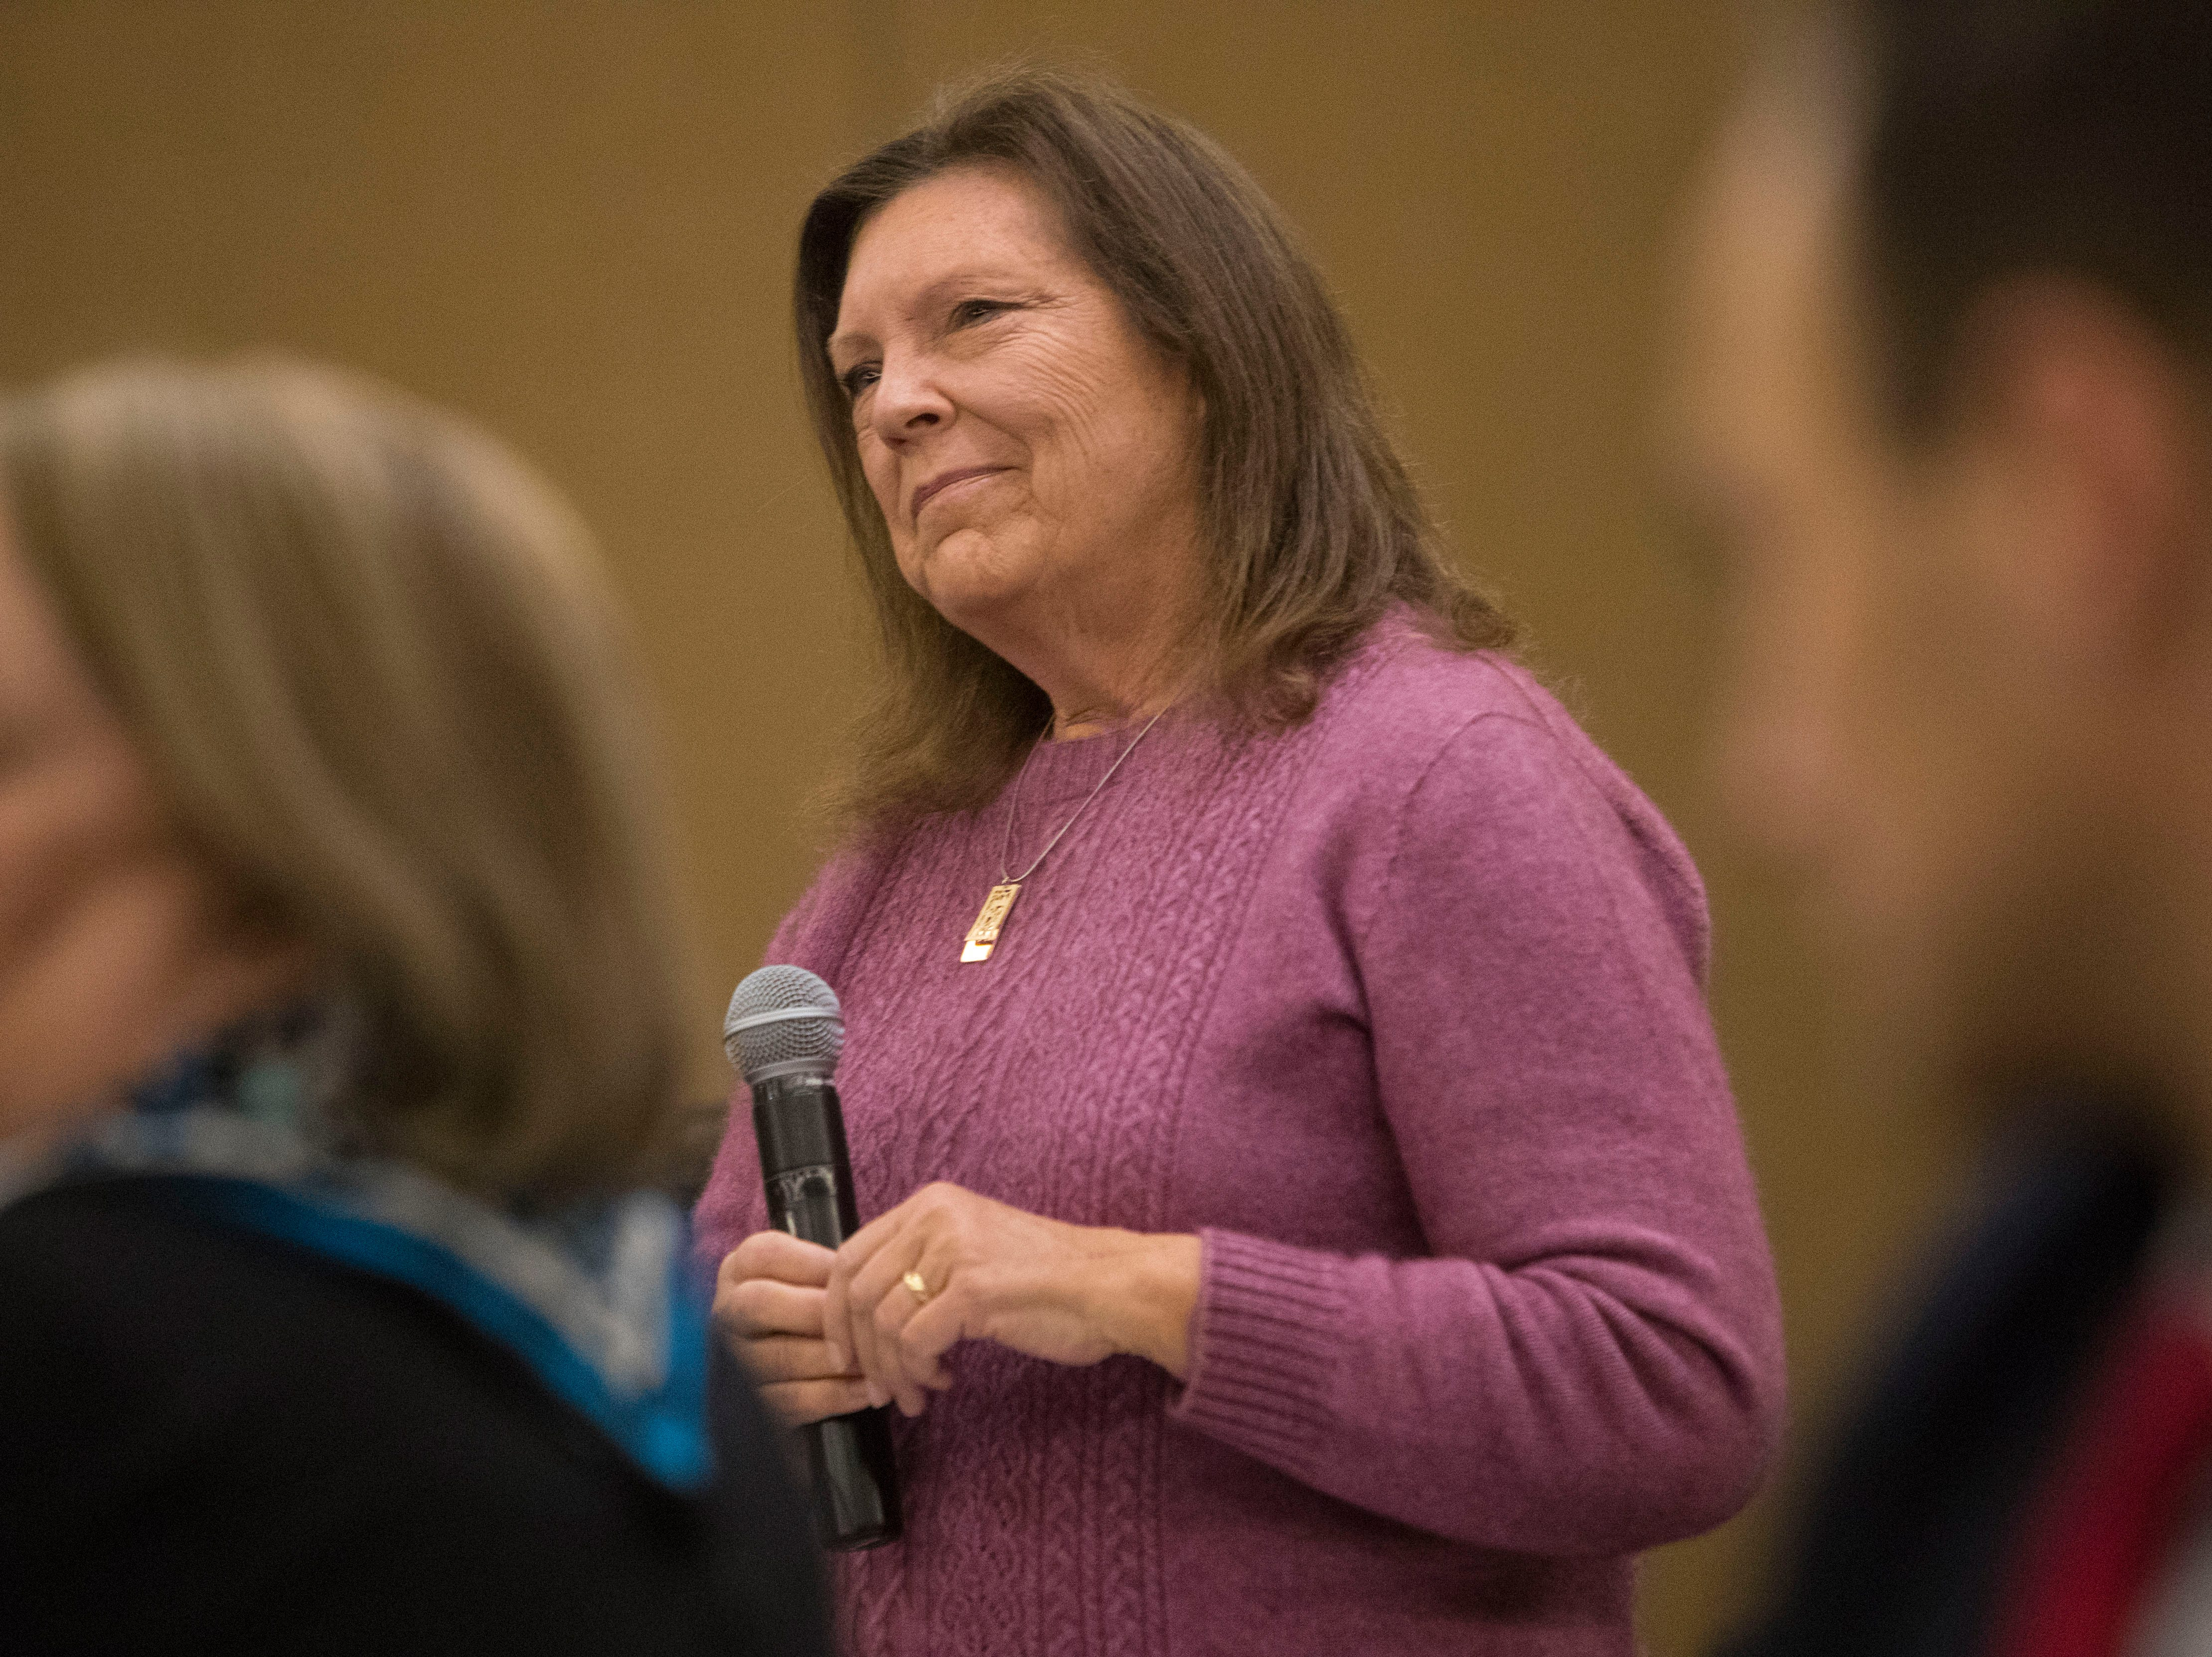 Rep. Rhonda Milstead, District 9, speaks at the Chamber of Commerce legislative breakfast, Thursday, Jan. 3, 2019 at the Best Western Plus Ramkota Hotel in Sioux Falls, S.D.